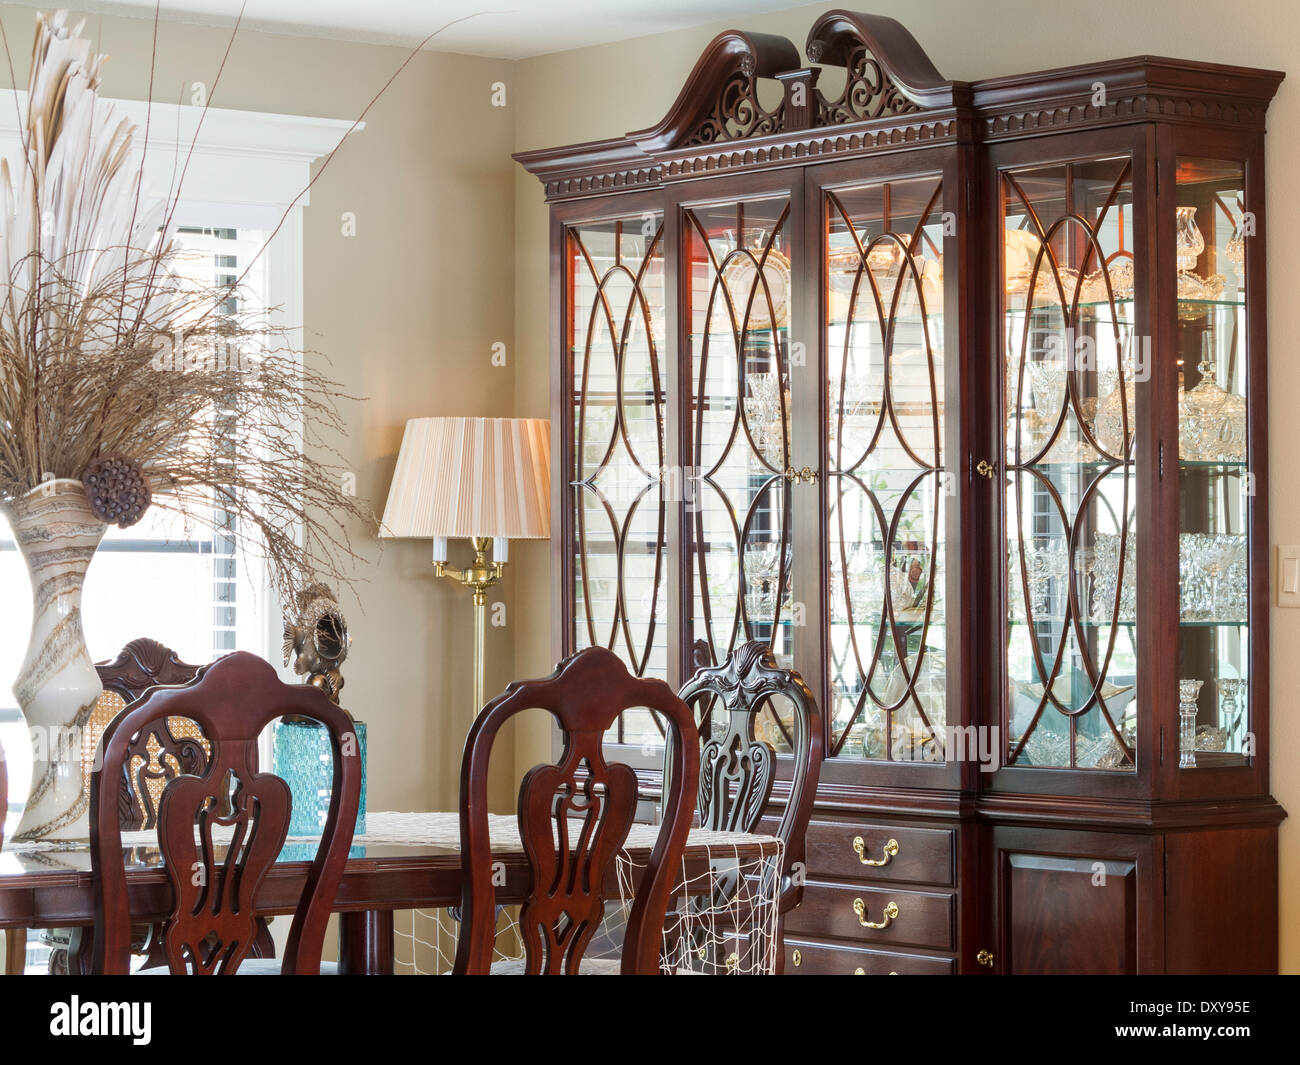 Showcase Dining Room Interior, USA Stock Photo: 68212074 - Alamy